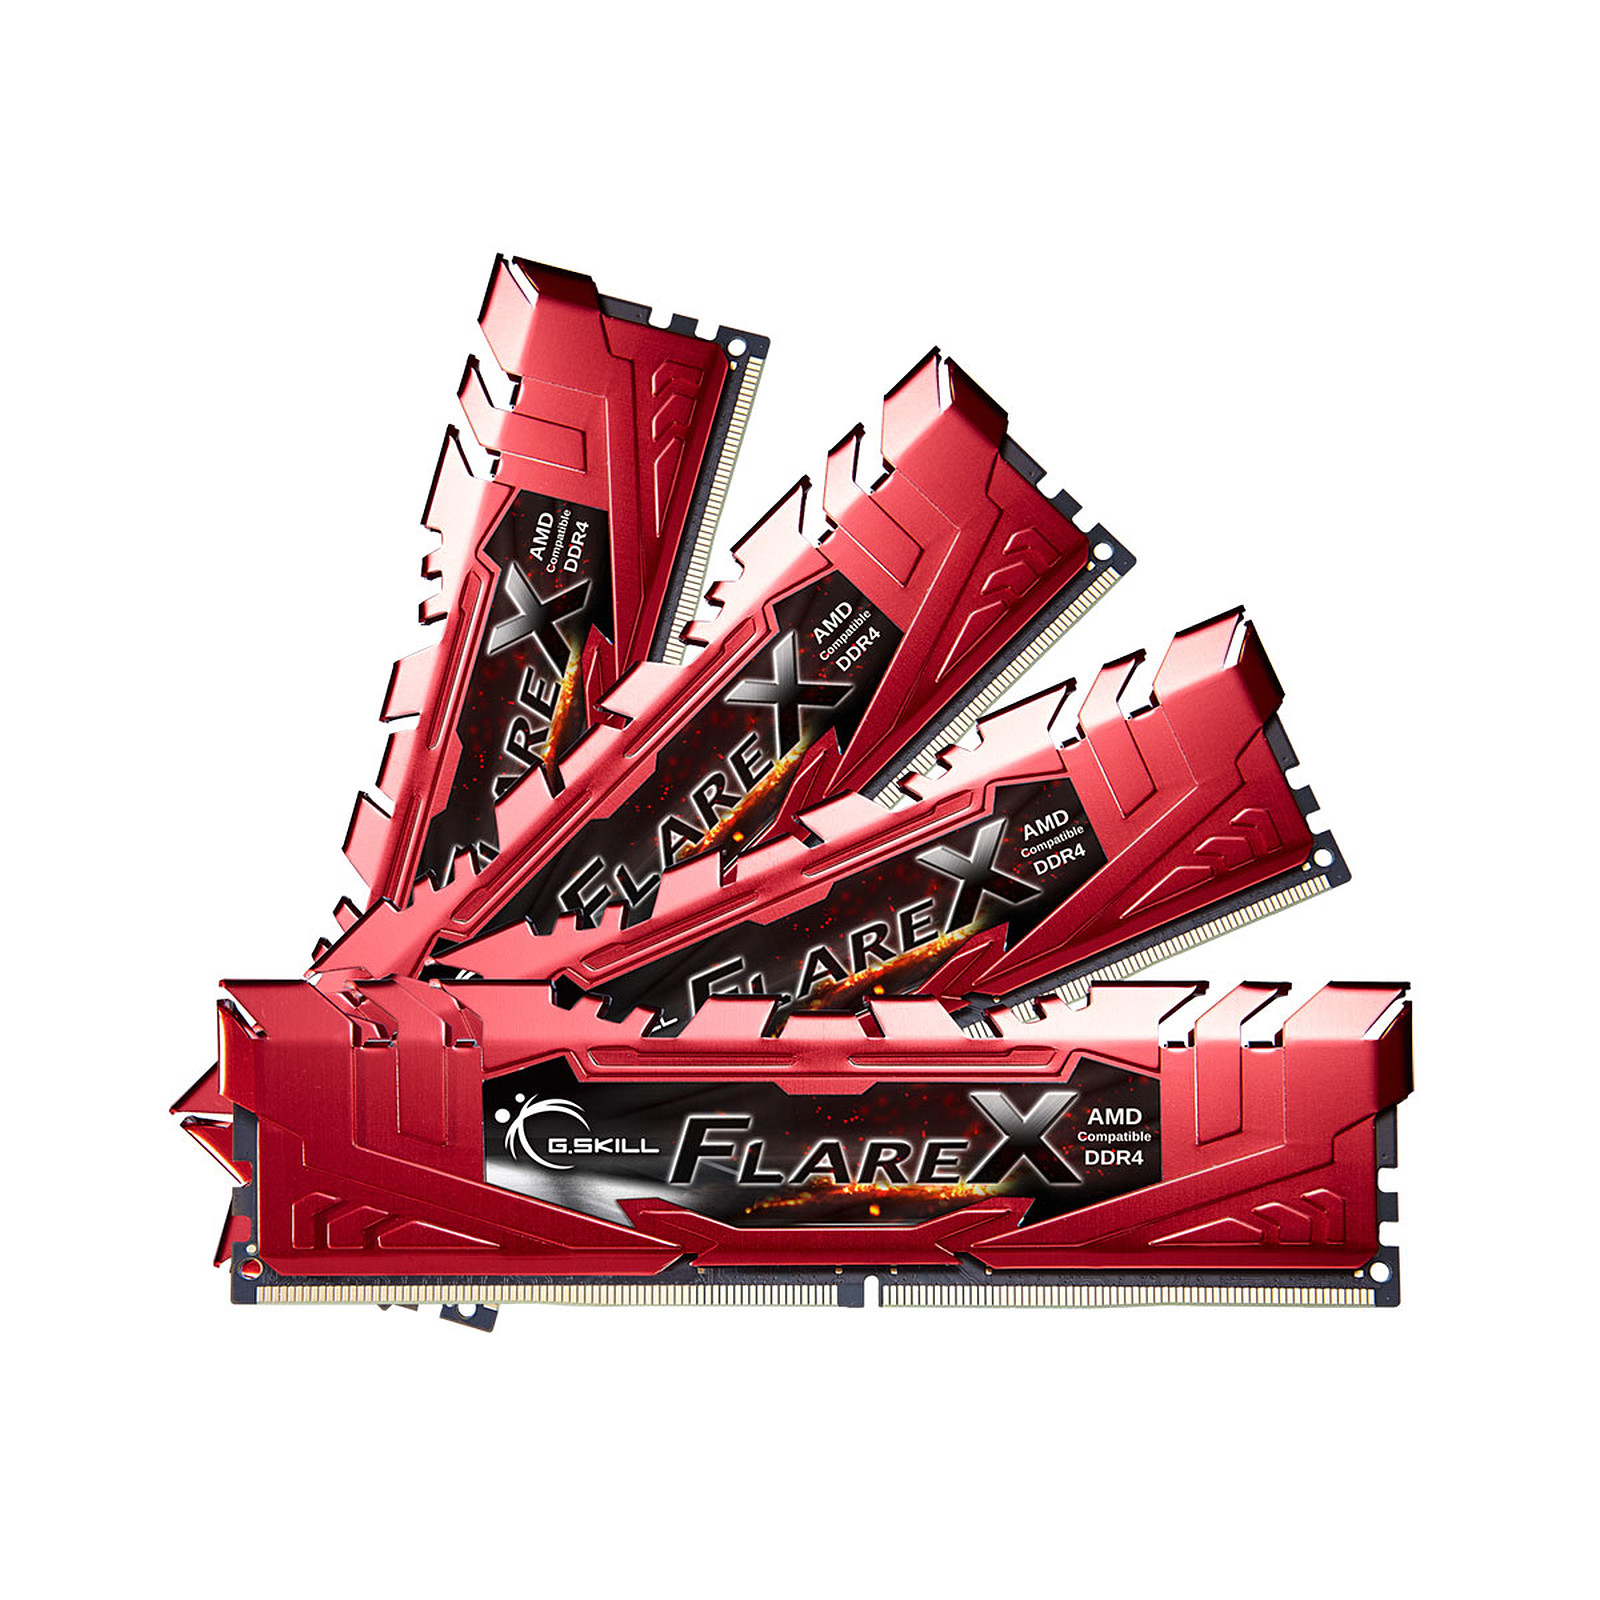 G.Skill Flare X Series Rouge 64 Go (4x 16 Go) DDR4 2400 MHz CL16